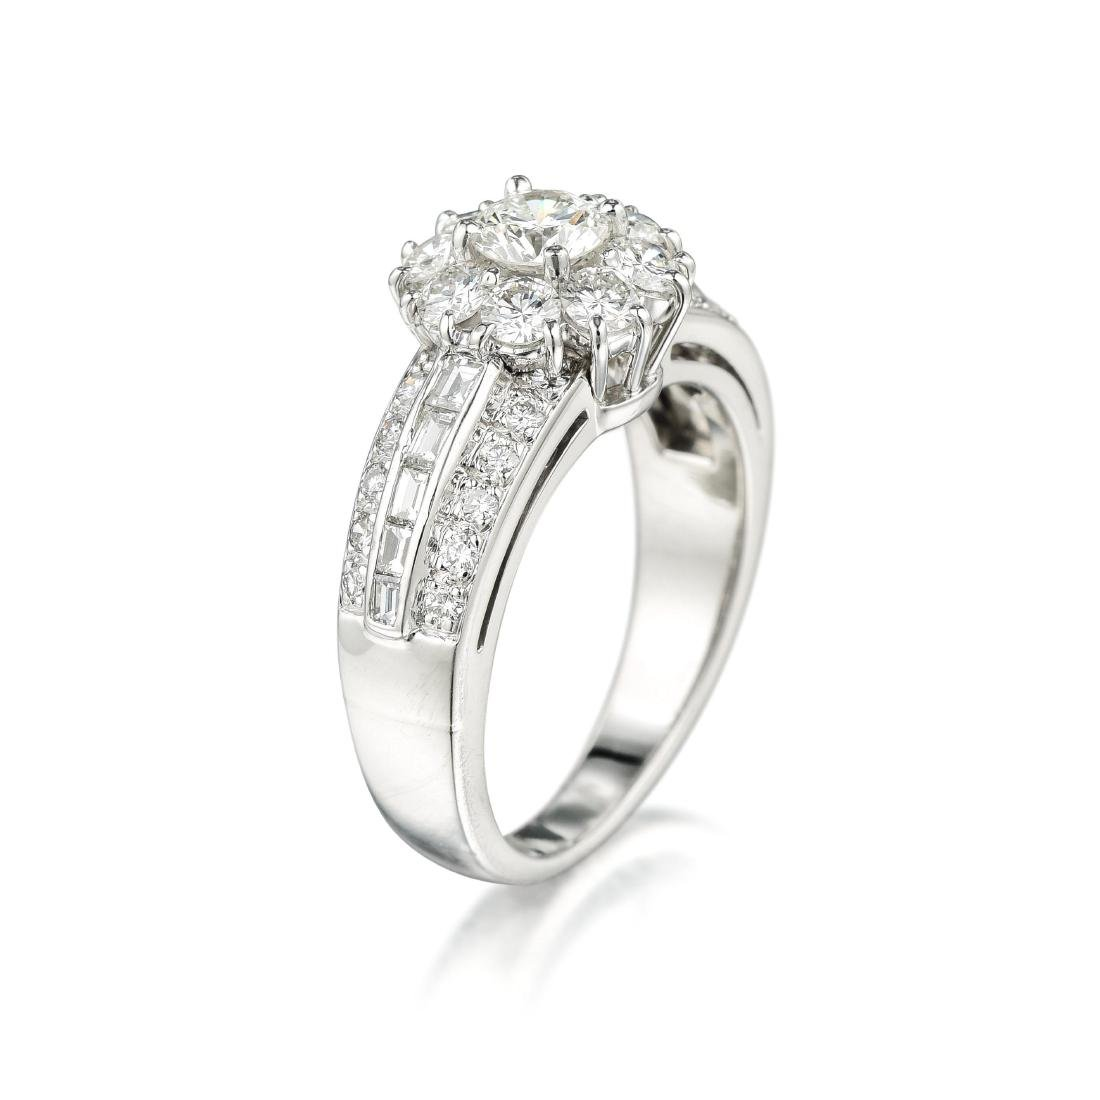 Van Cleef & Arpels Snowflake Diamond Ring - 2